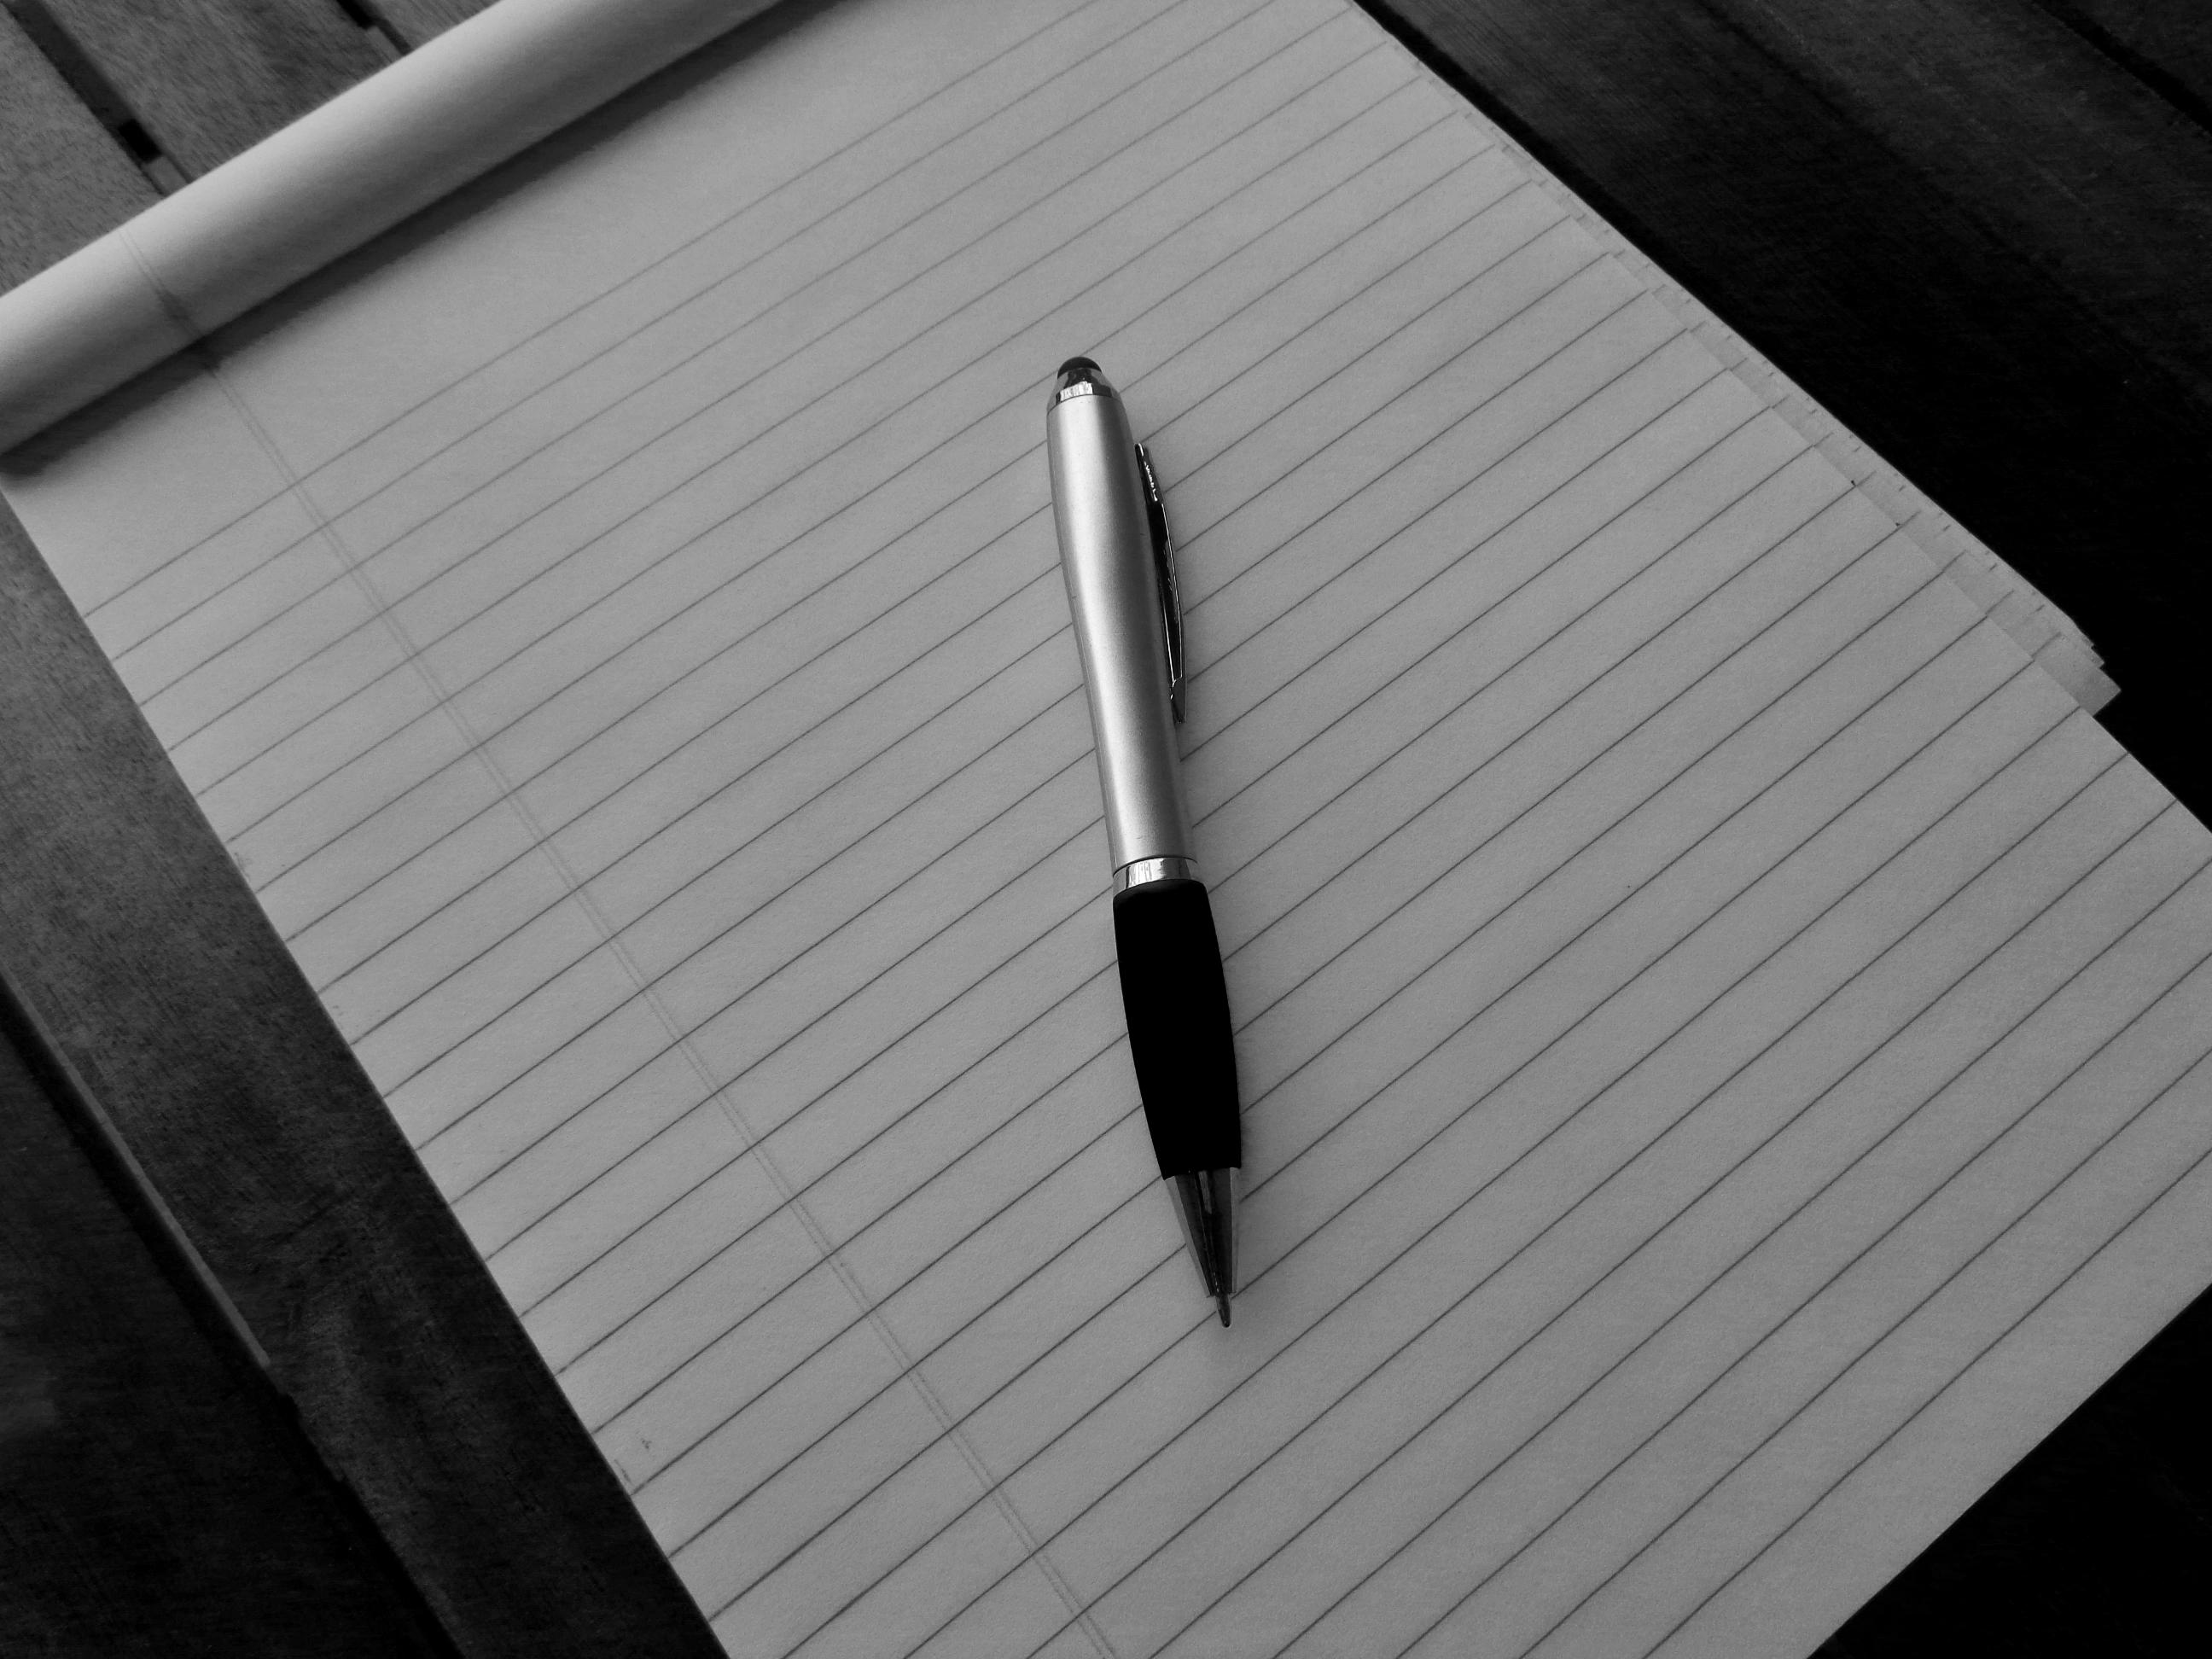 write a 1,000 word article or blog post